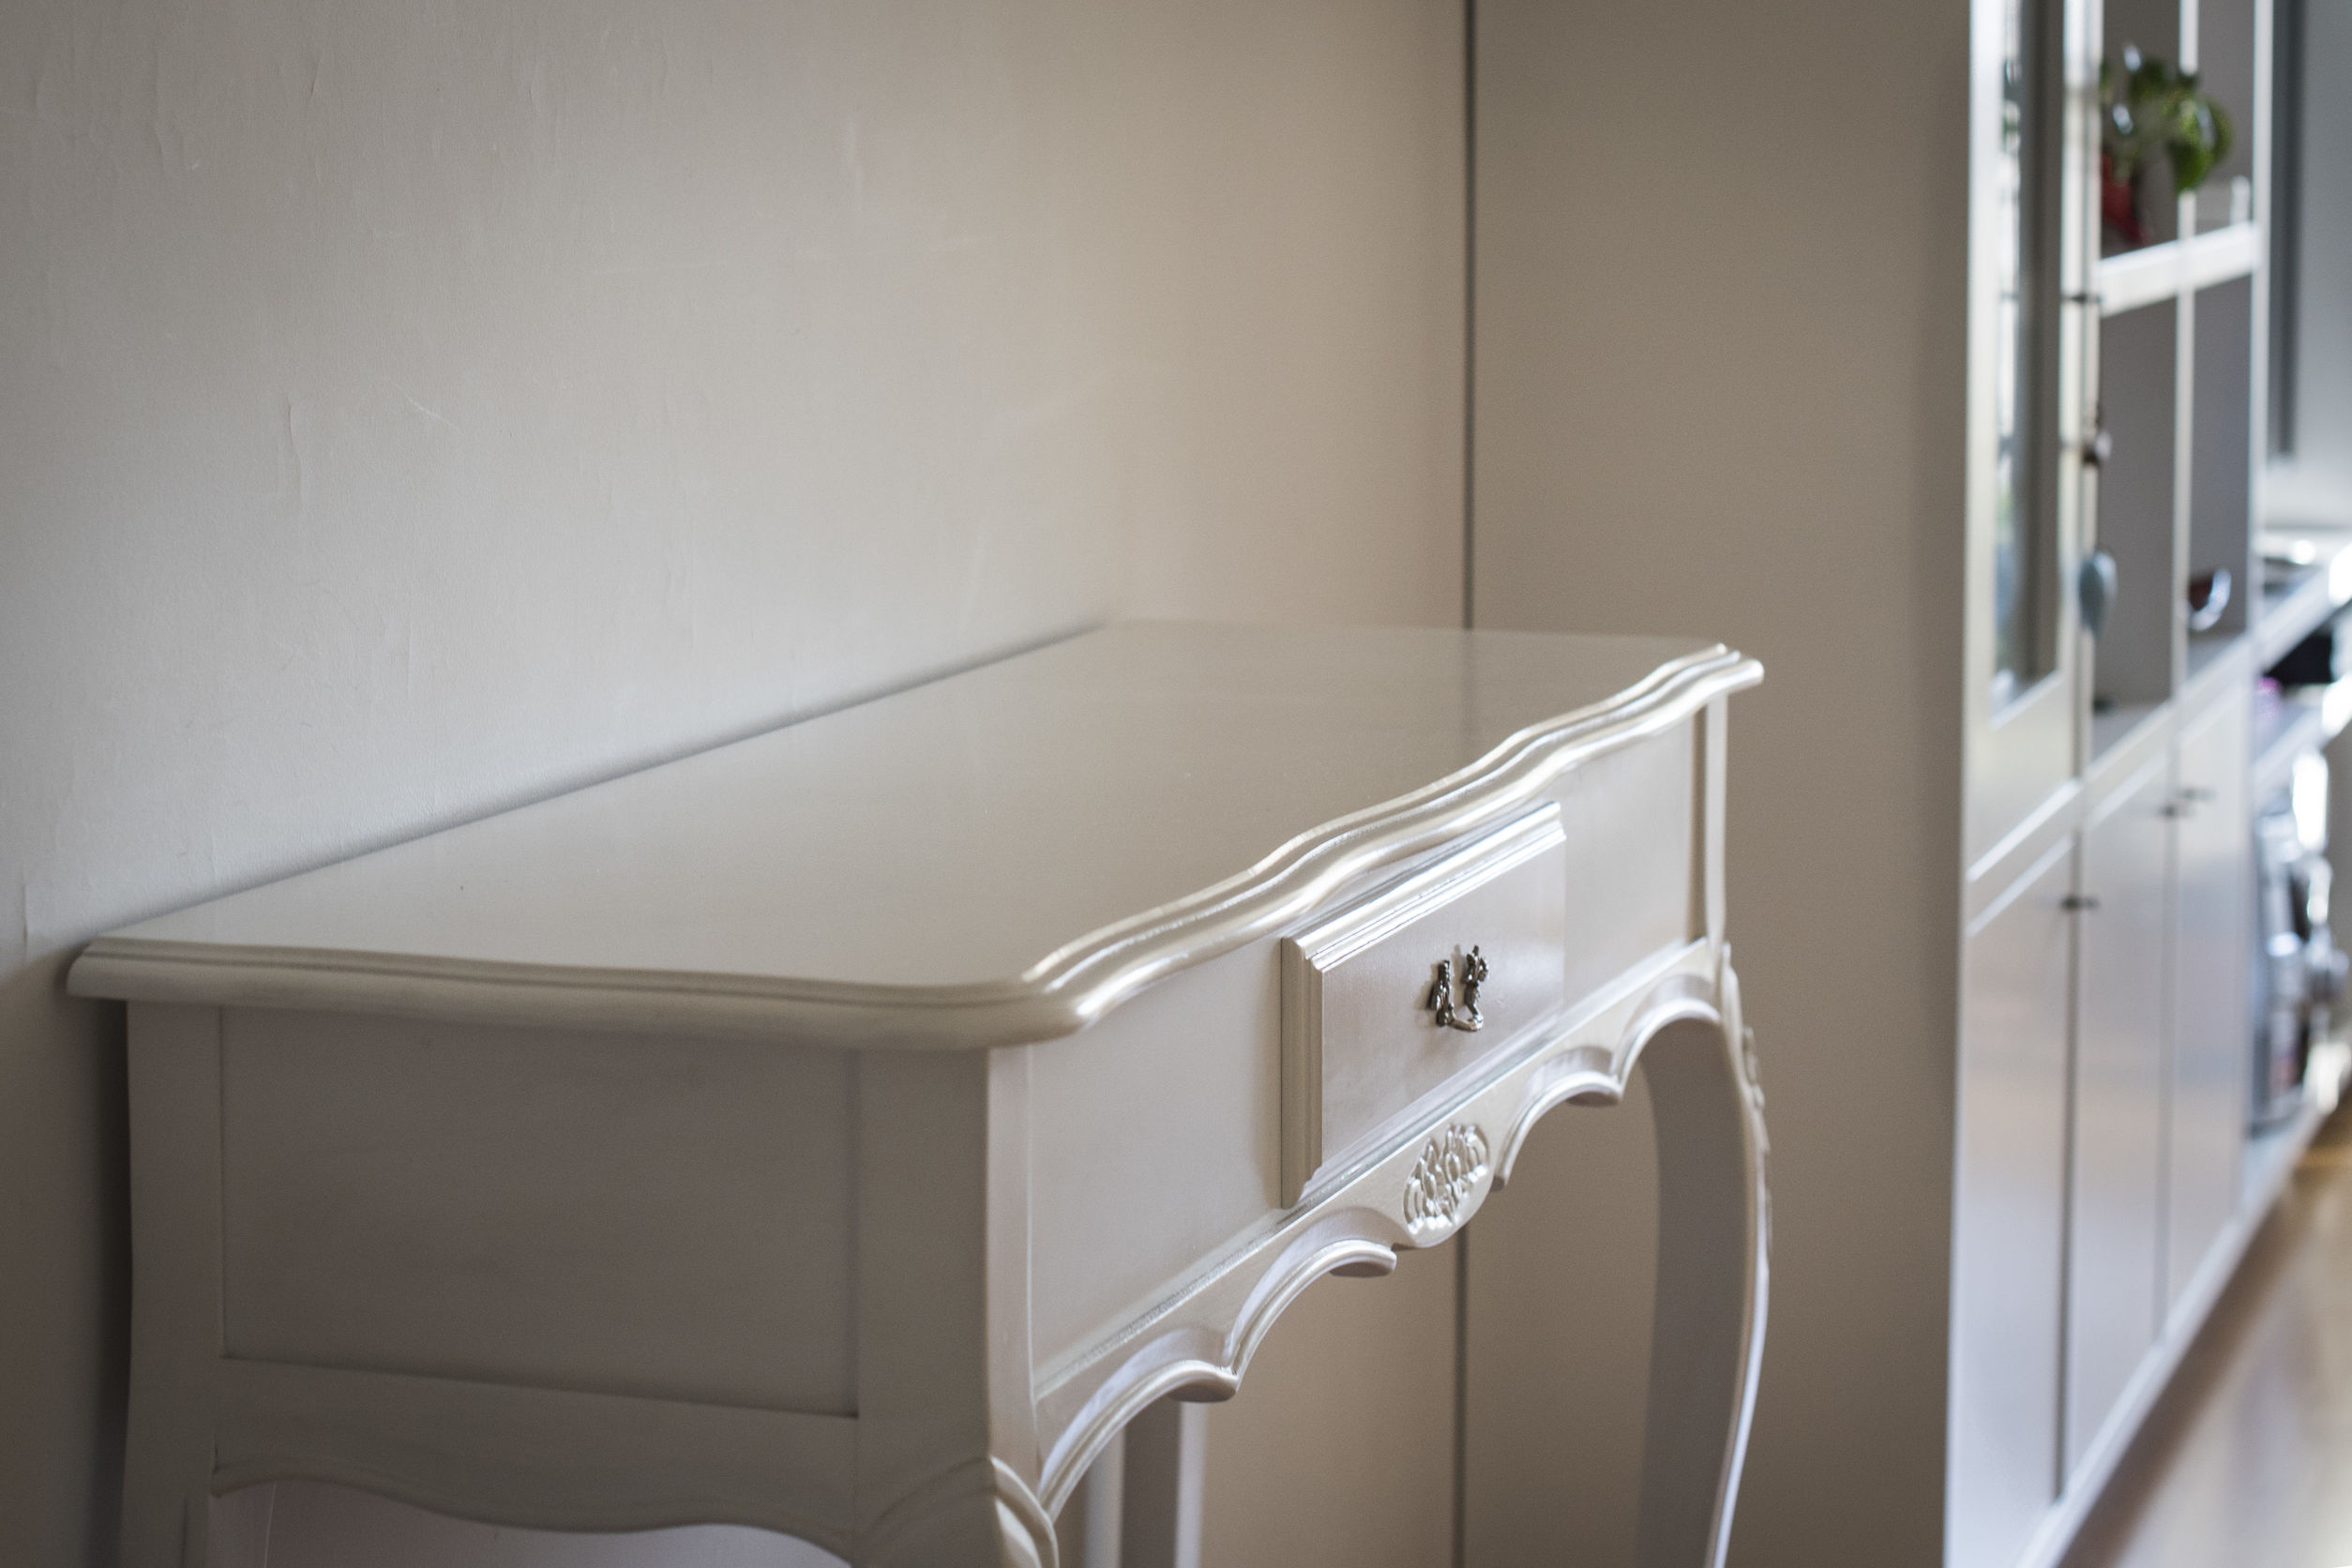 The Best Console Table: Shopping Guide and Recommendations (09/21)